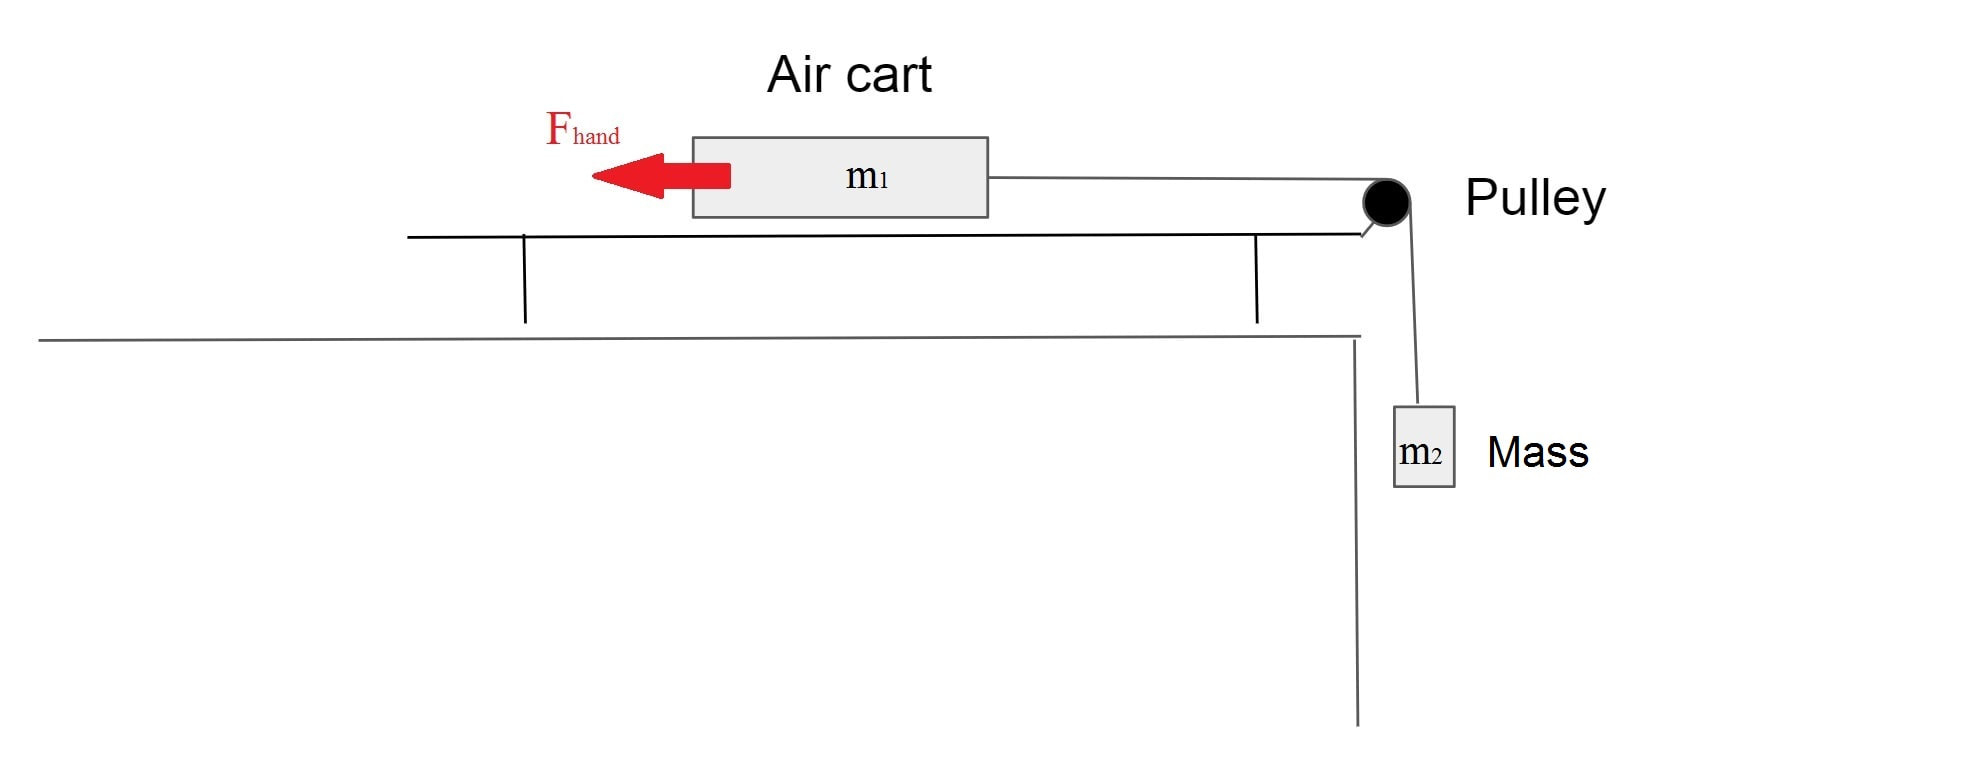 Free Body Diagram A5s18 Physics 5 Labs